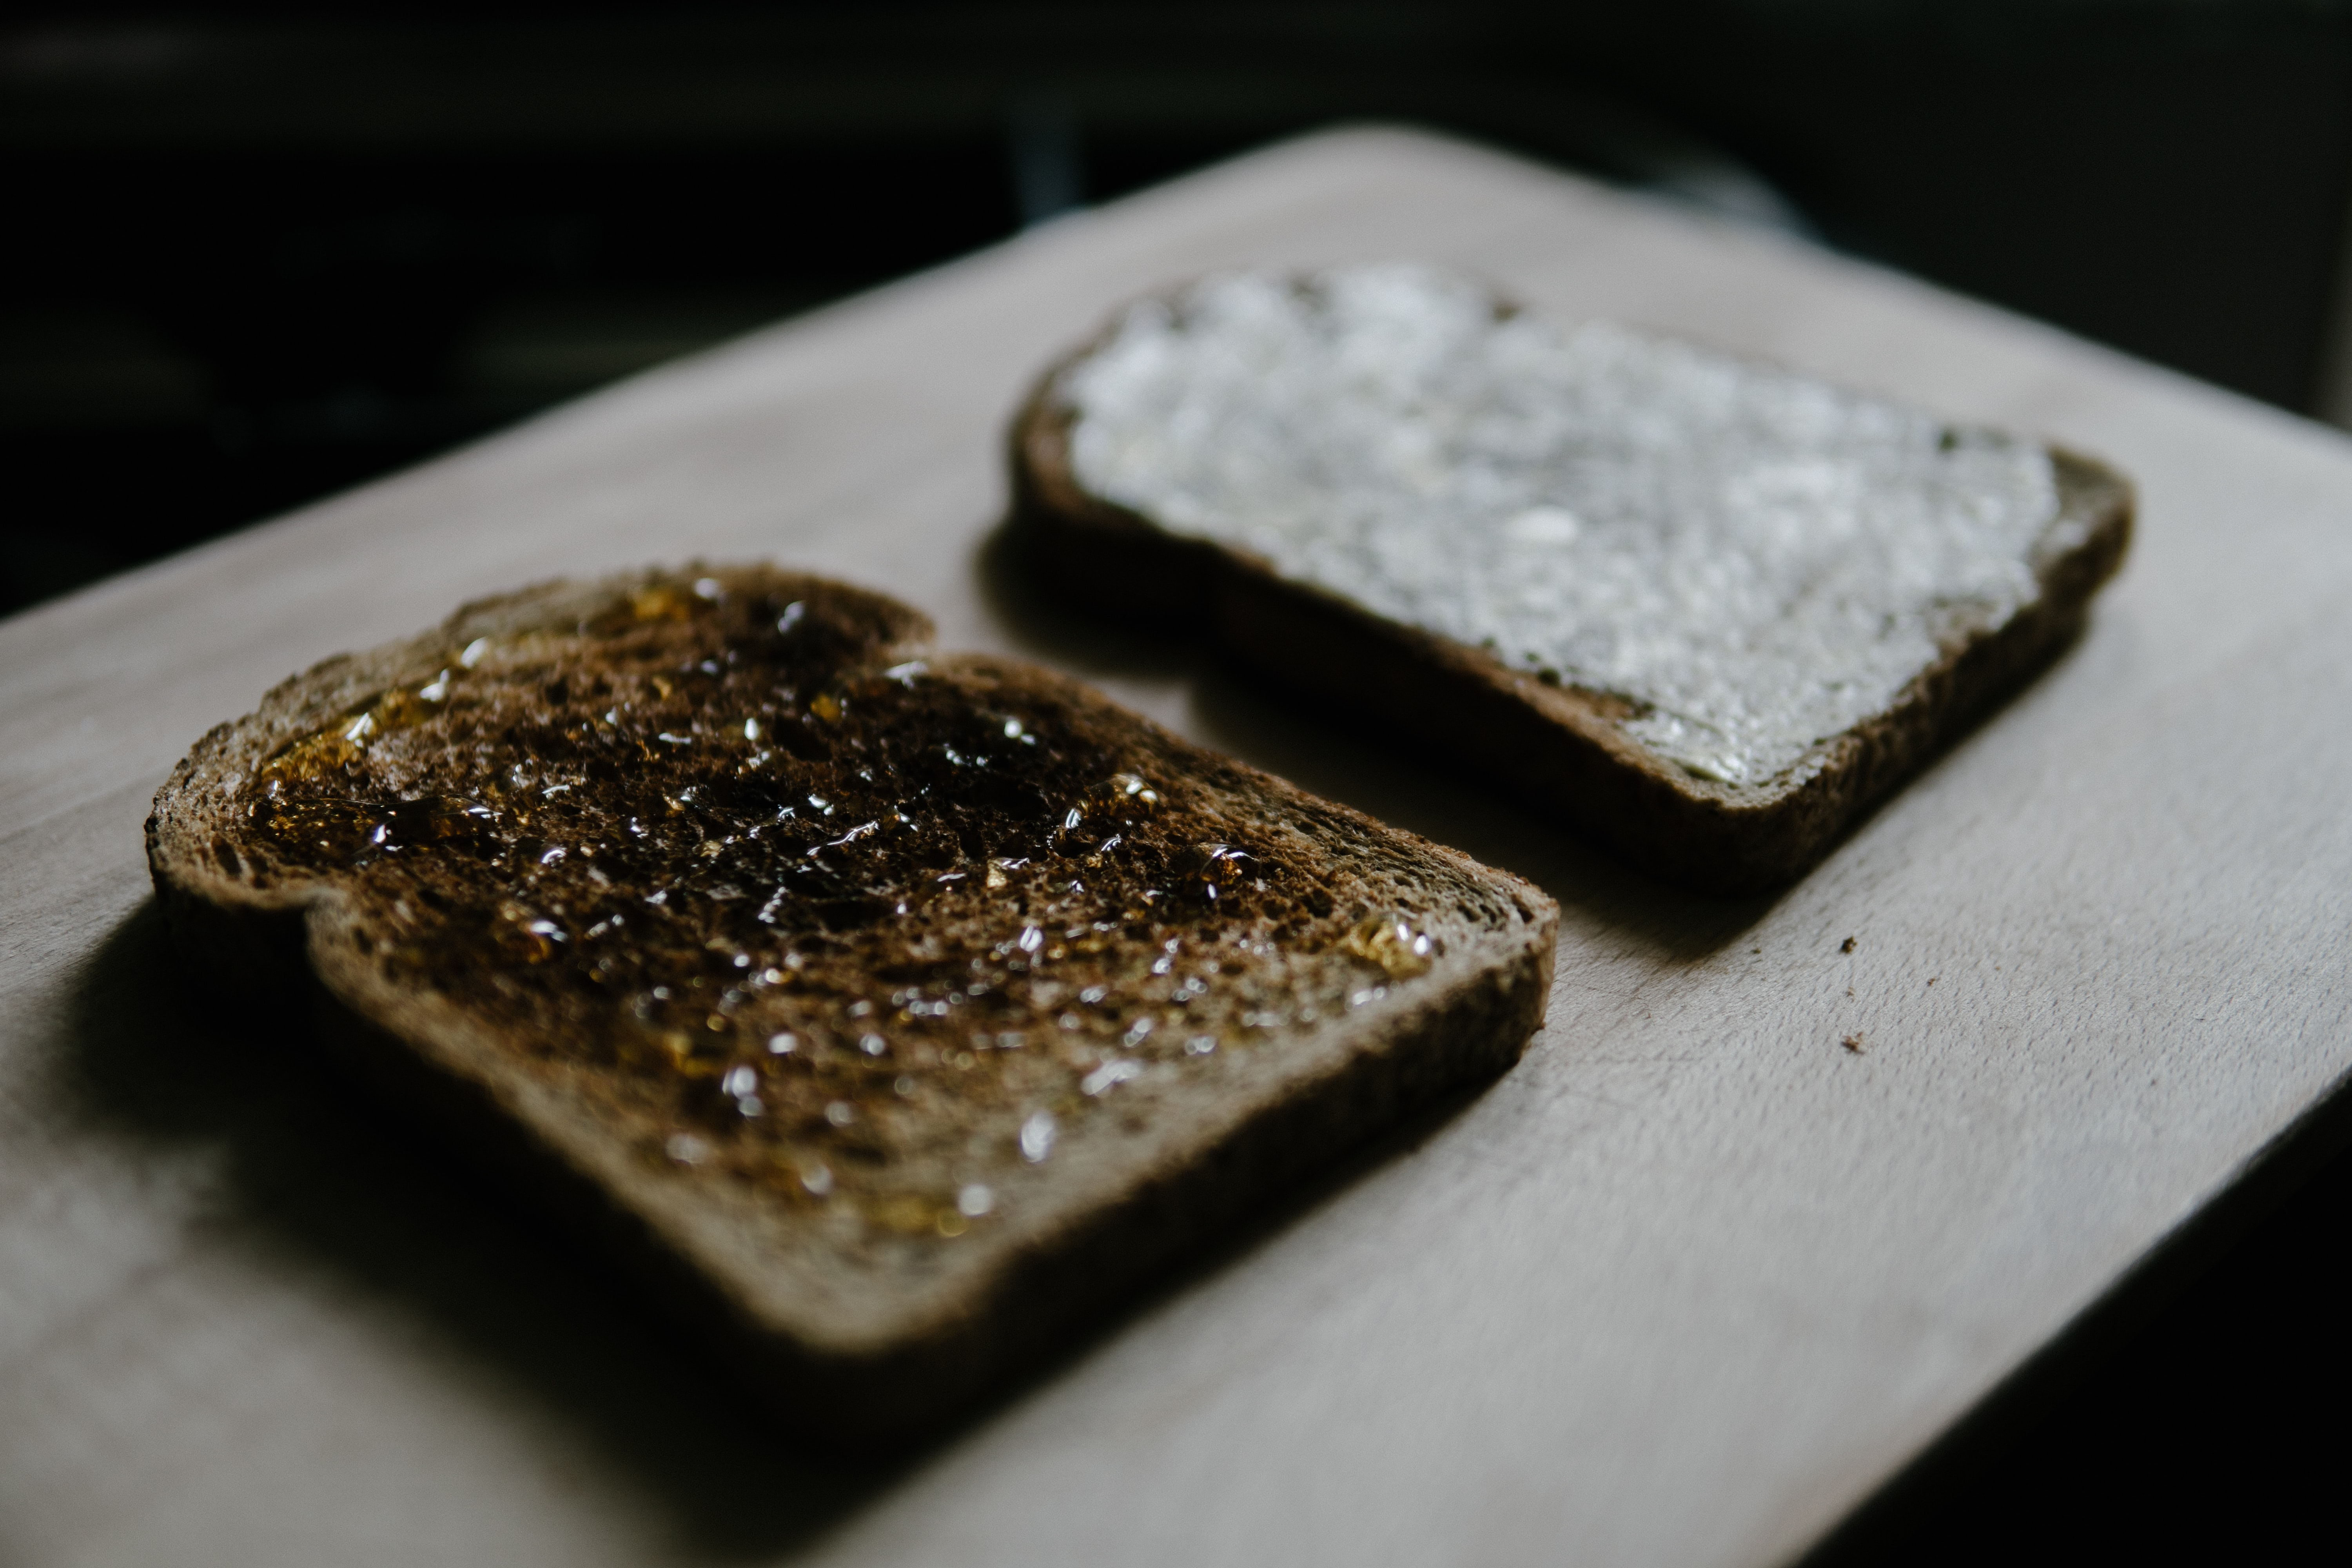 two toasted breads on wooden table